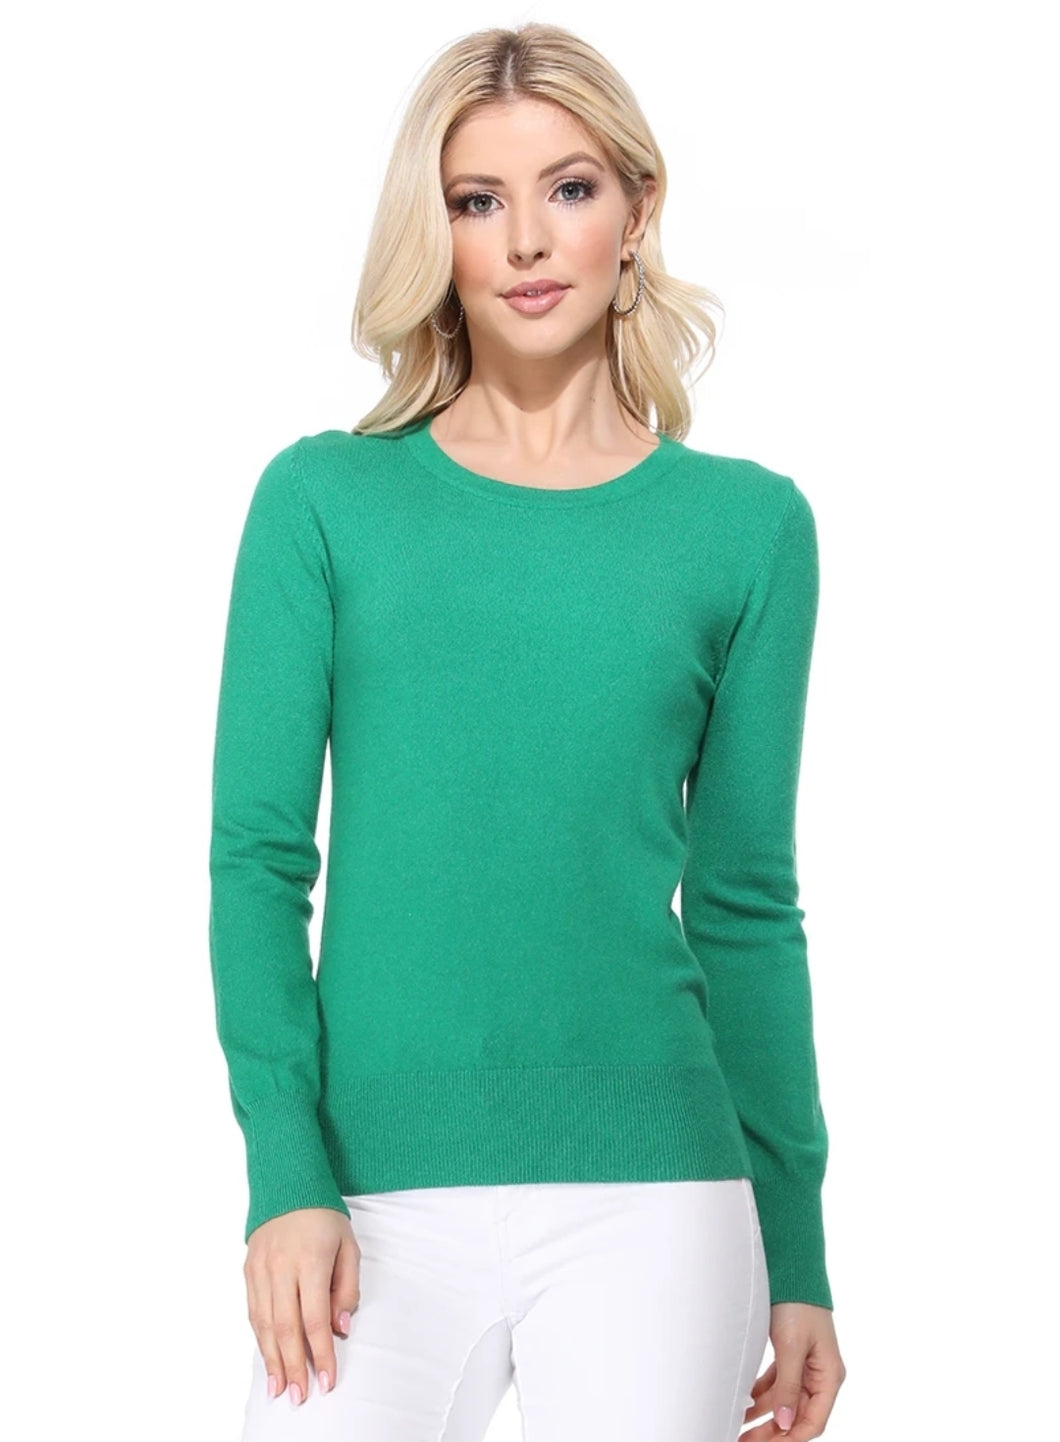 Crewneck Sweater in Kelly Green